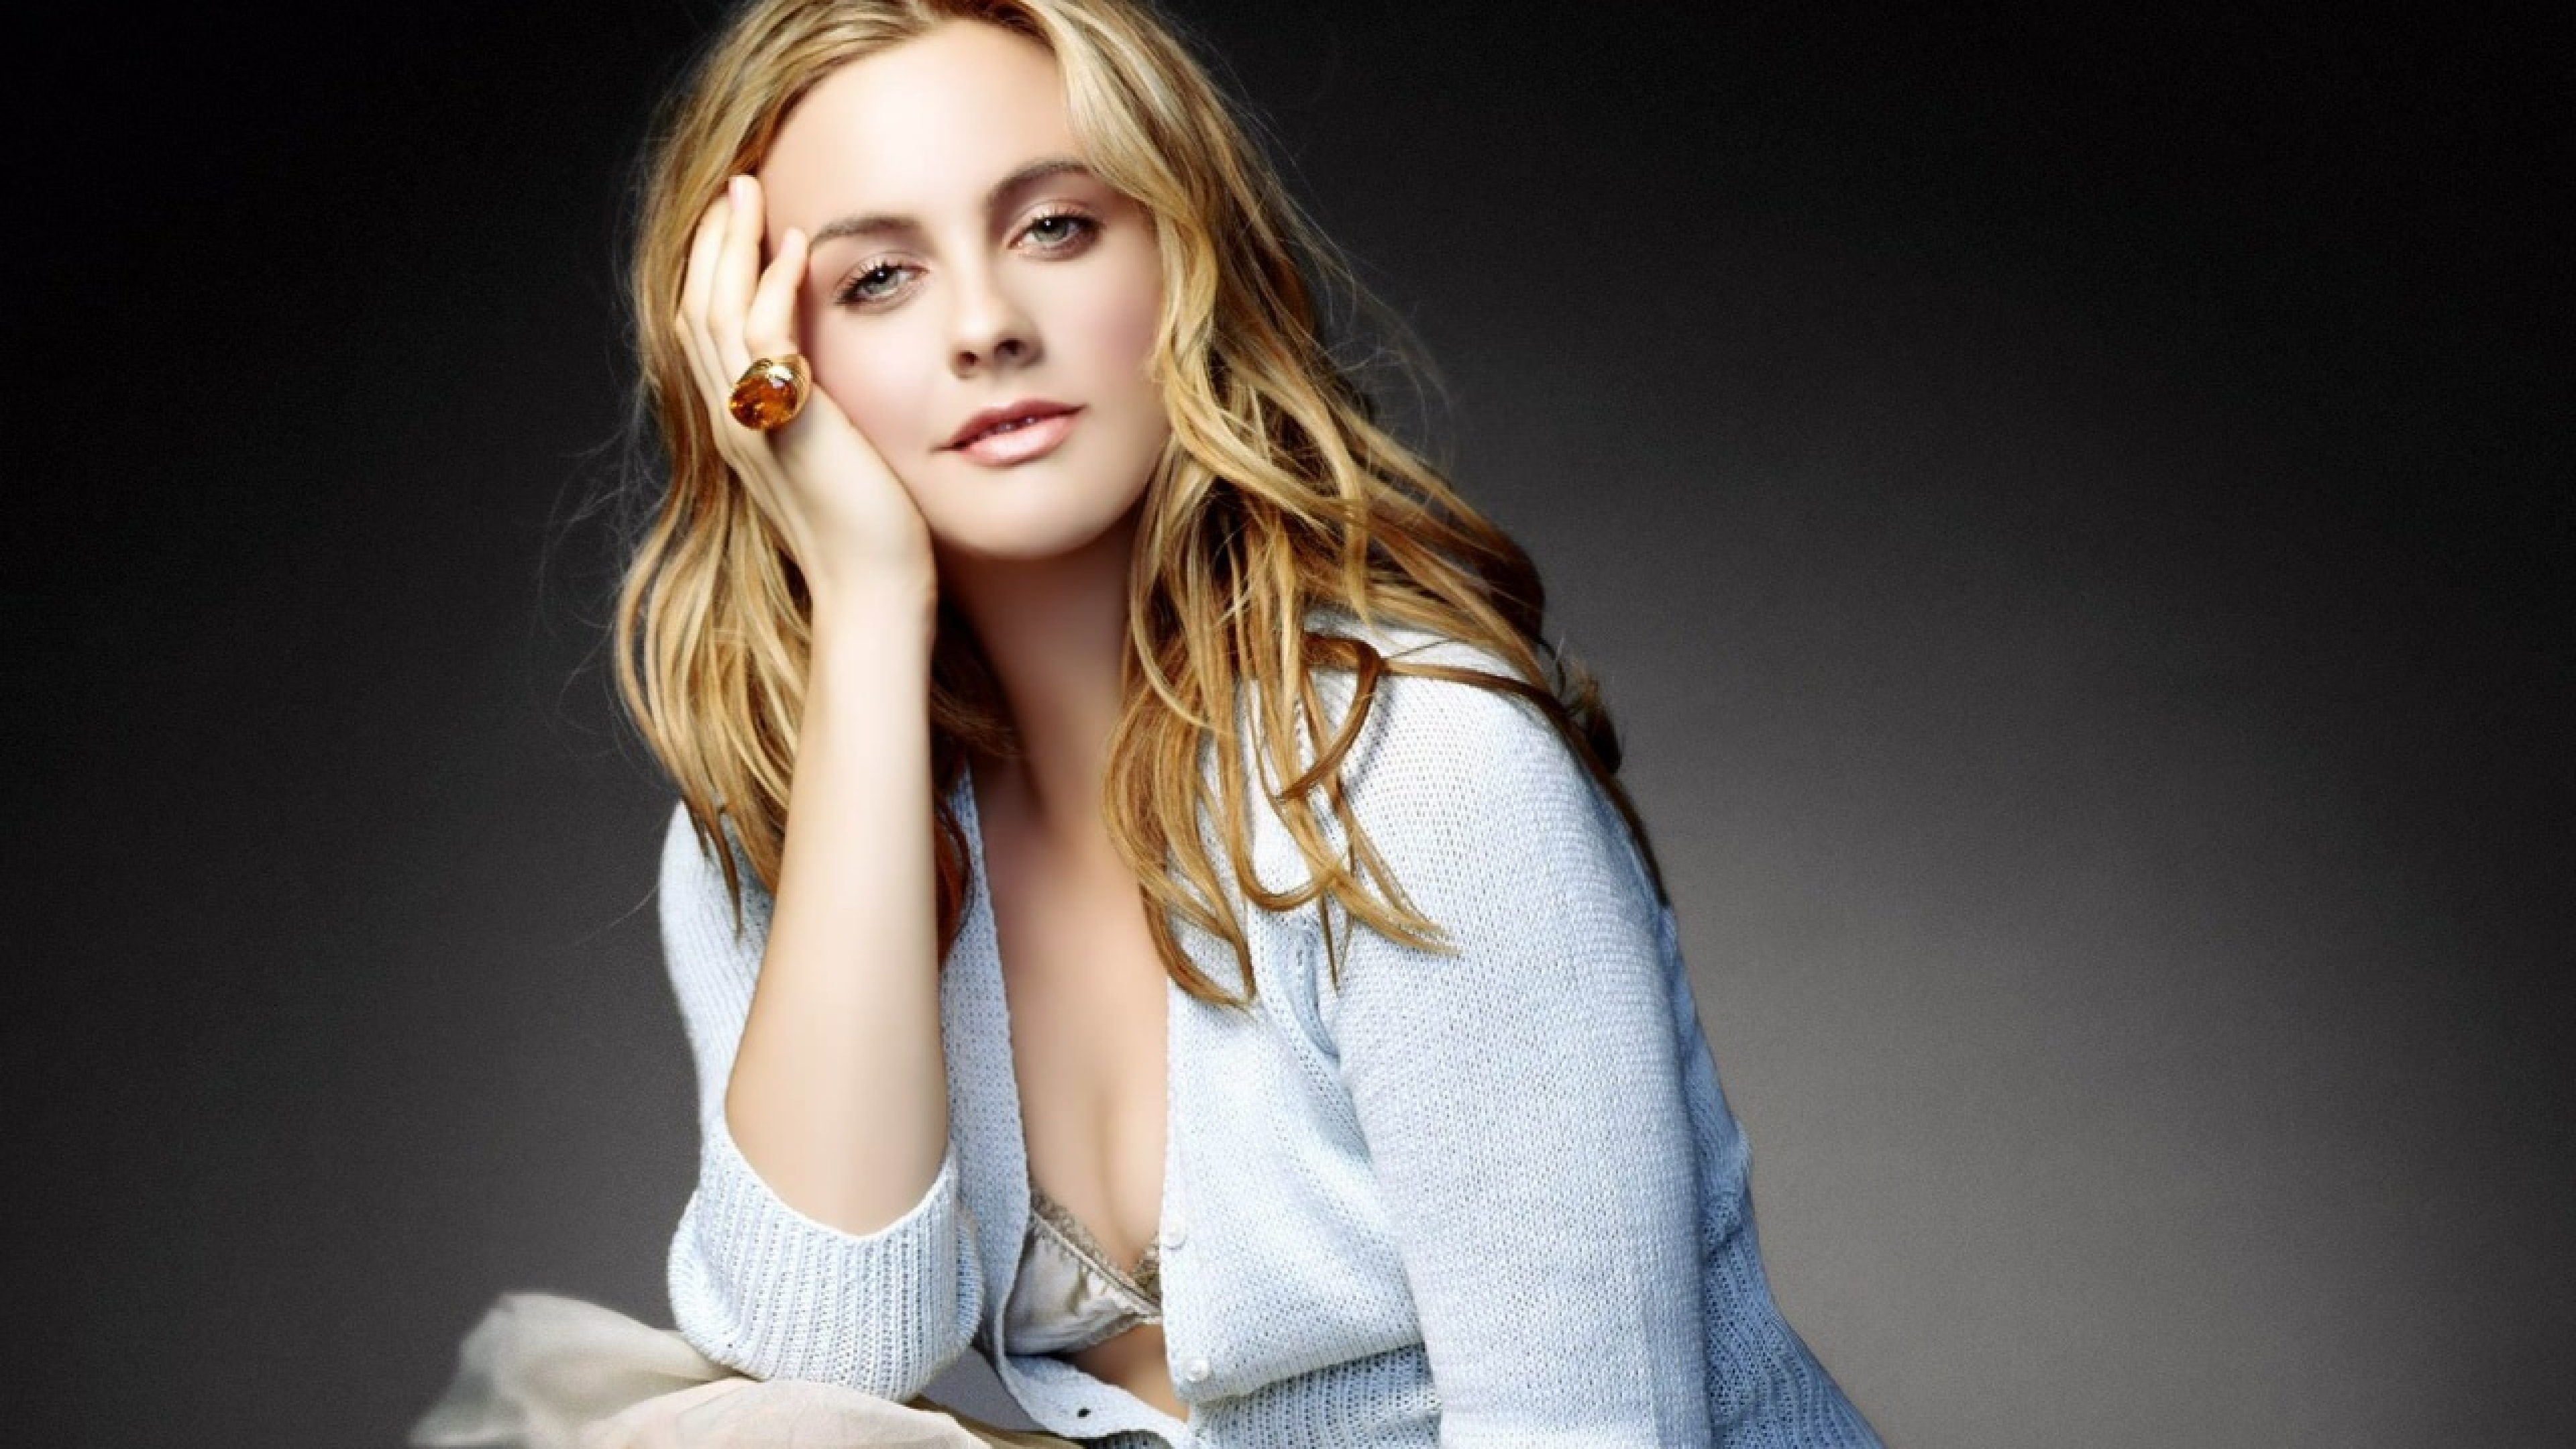 3840x2160 Alicia Silverstone Stylish Hd Pics 4k Wallpaper